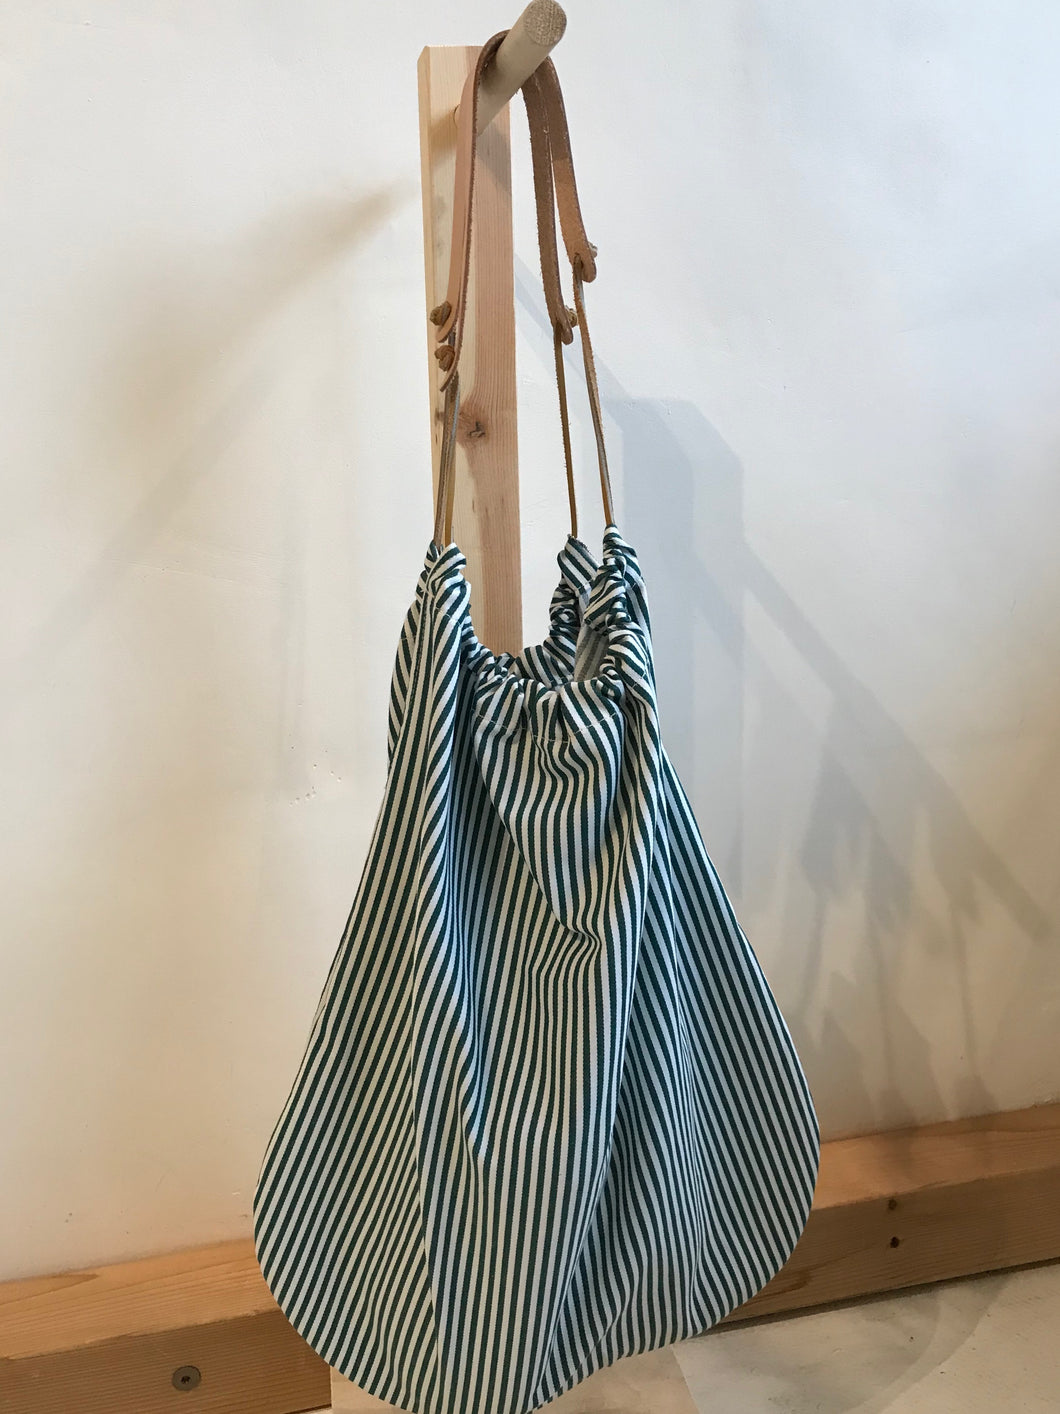 erin templeton Grocery Bag / Sienna, Black and Green Strips